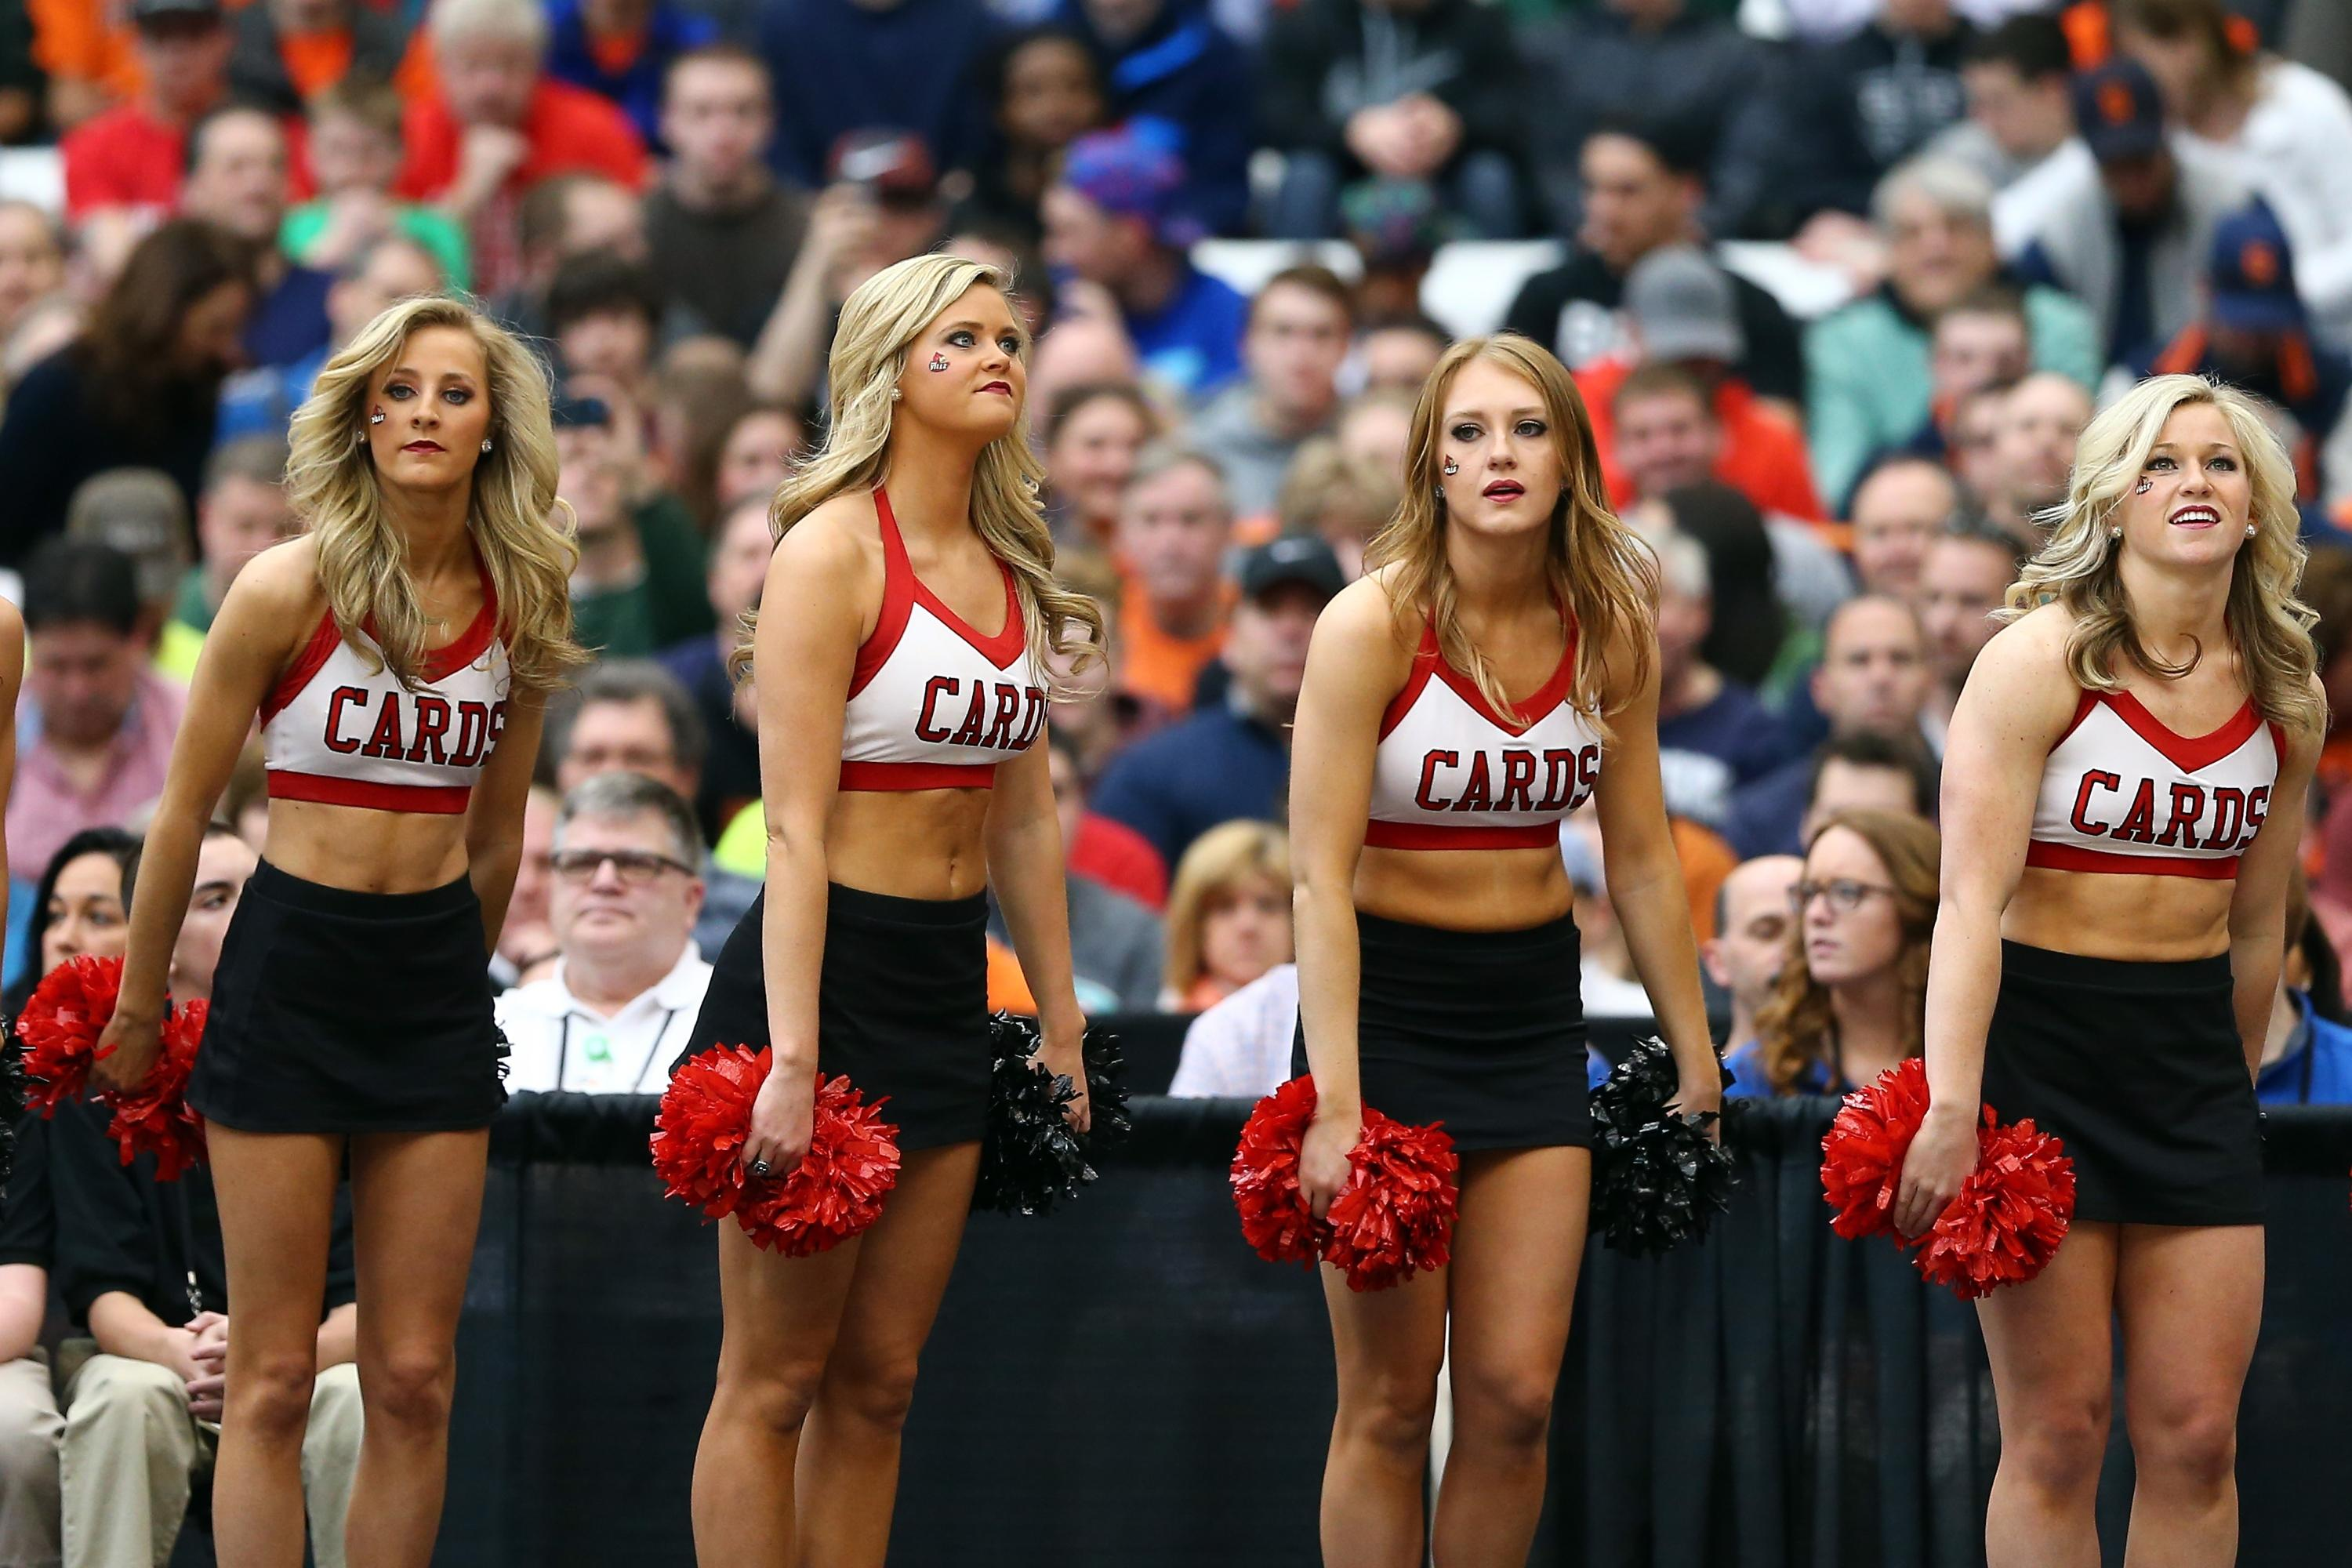 2015 March Madness cheerleaders - Elite 8